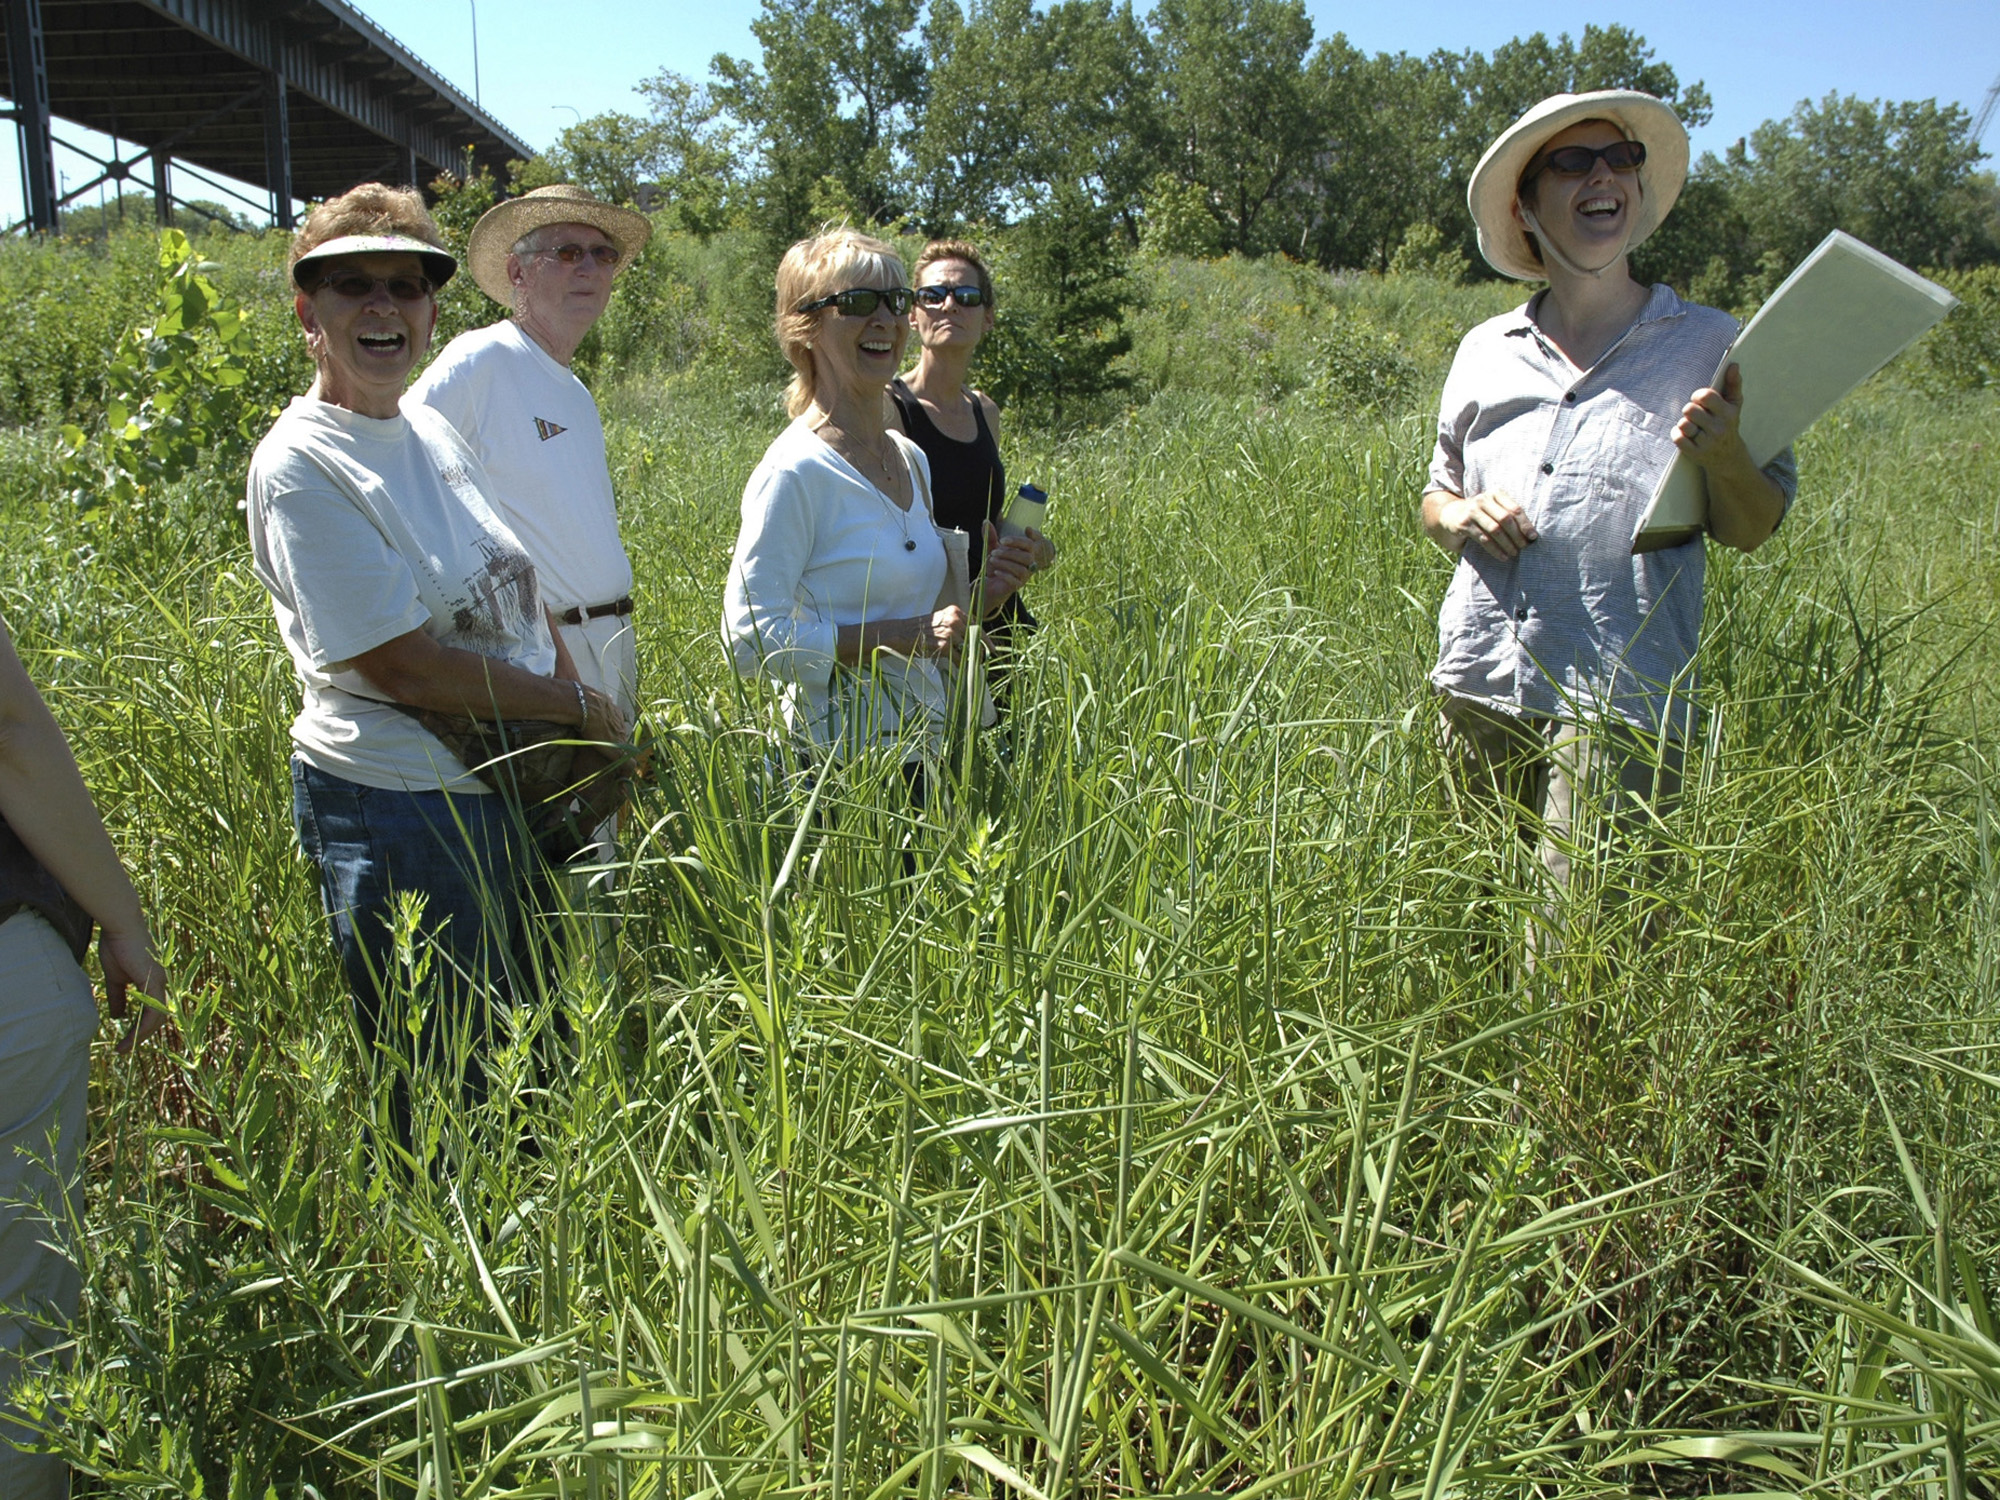 Leading botany/restoration walk with Wild Ones - Milwaukee North chapter (photo: Ney Tait Fraser)